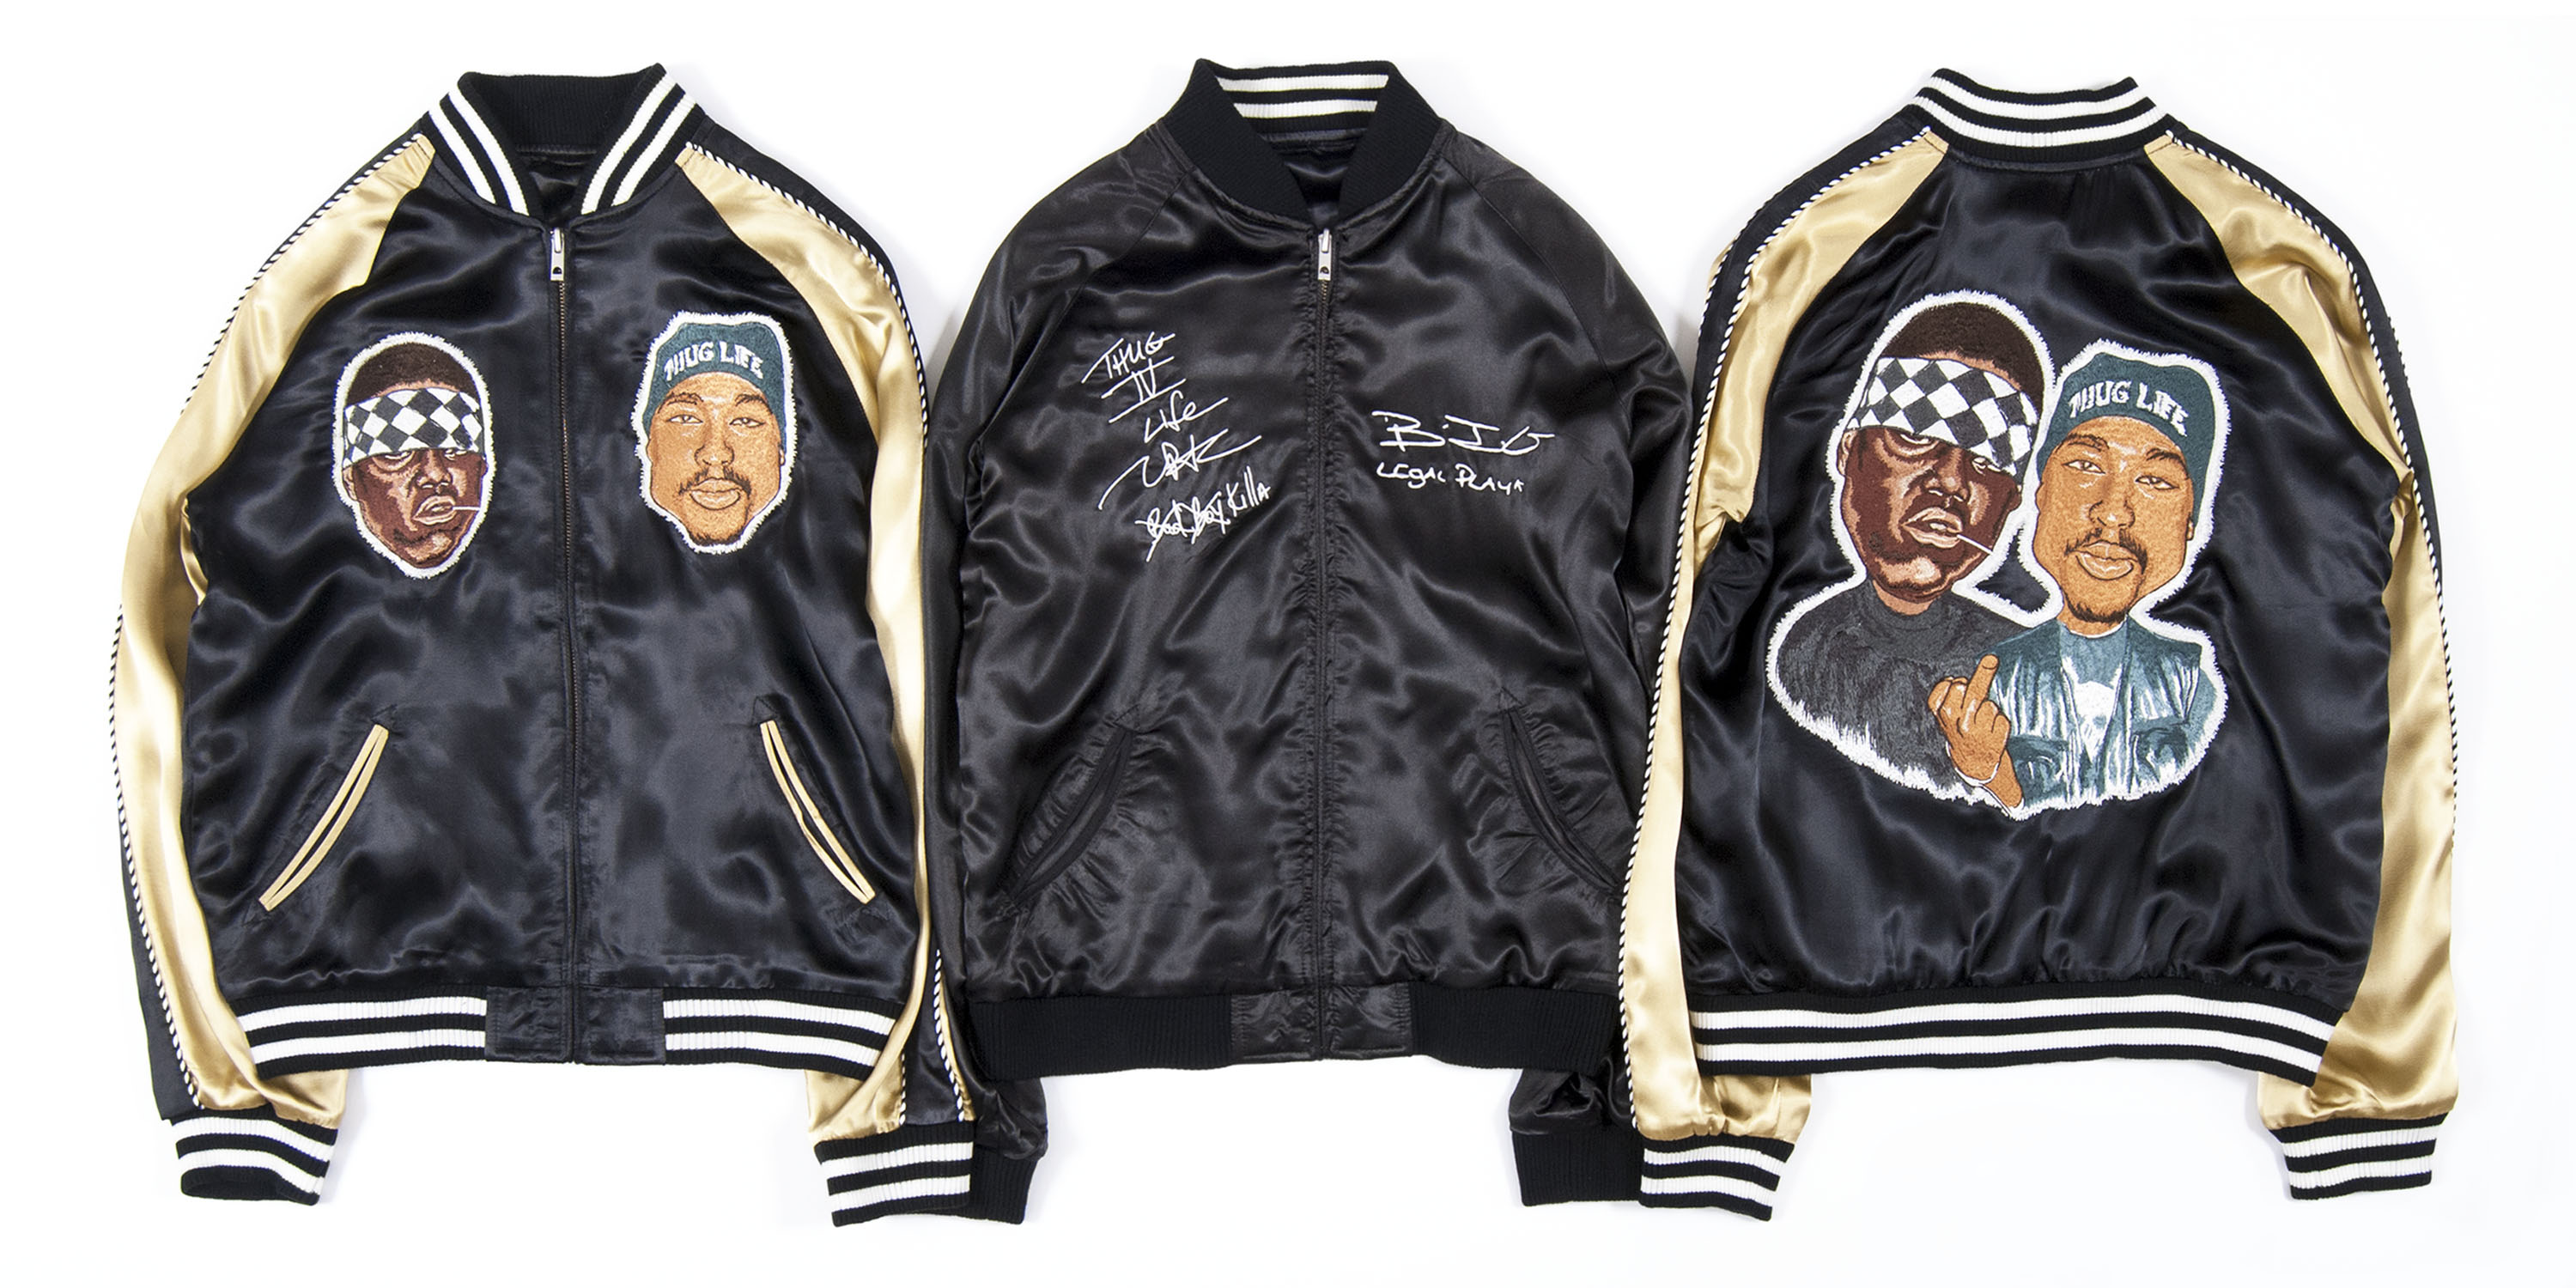 The Biggie Amp Tupac Jacket Of Your Dreams Has Arrived